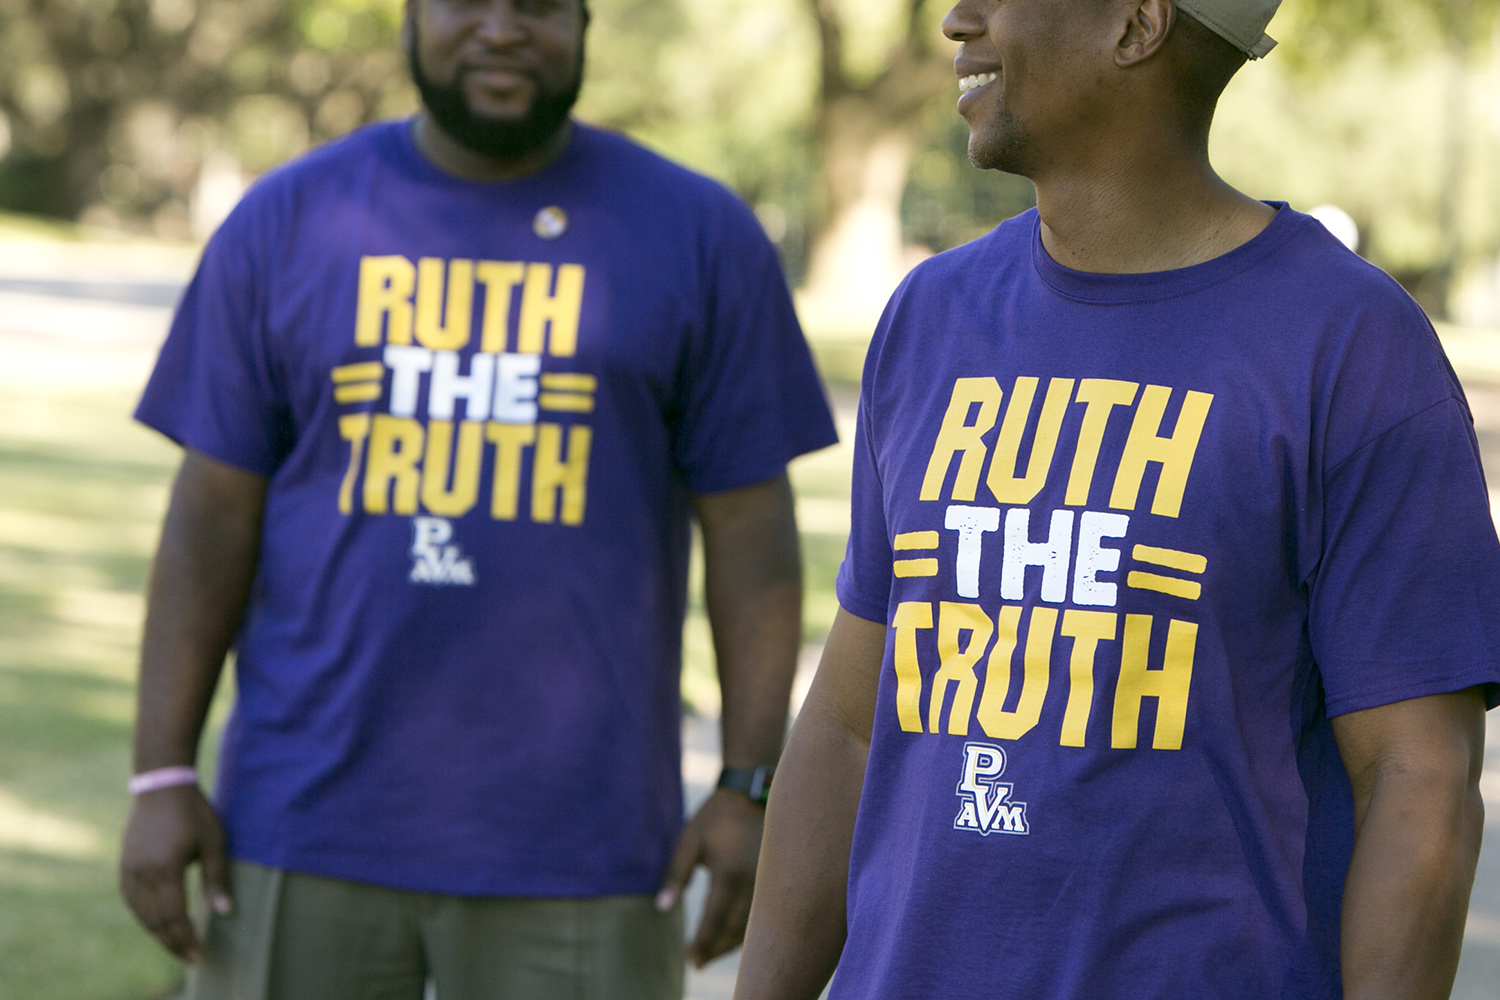 Students on the Prairie View A&M University wear shirts in support of the interim President Ruth Simmons, who is the sole finalist for the position of permanent president.